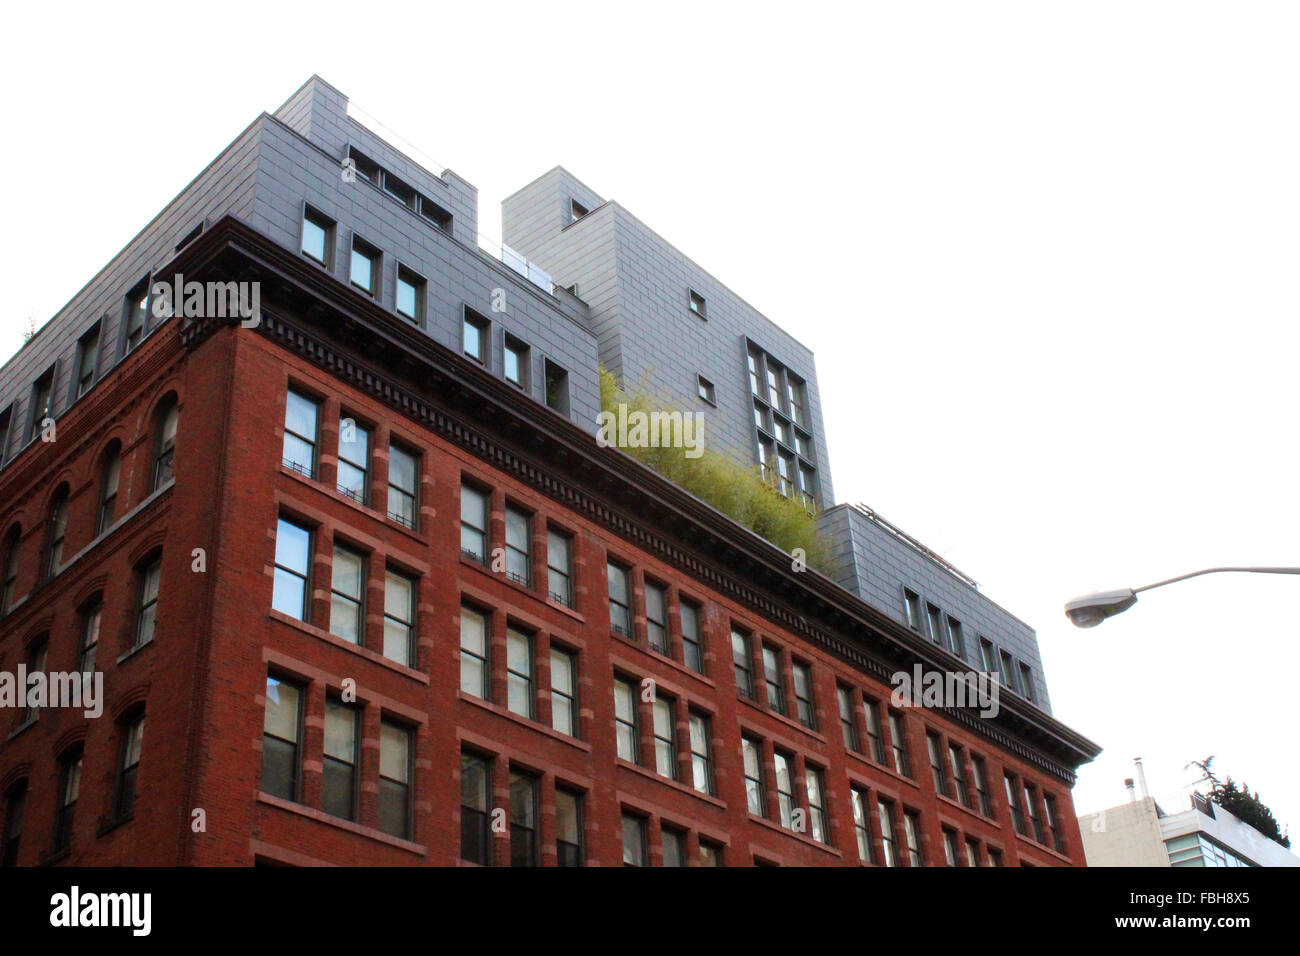 David bowie penthouse apartment 285 lafayette st new york for David bowie nyc apartment